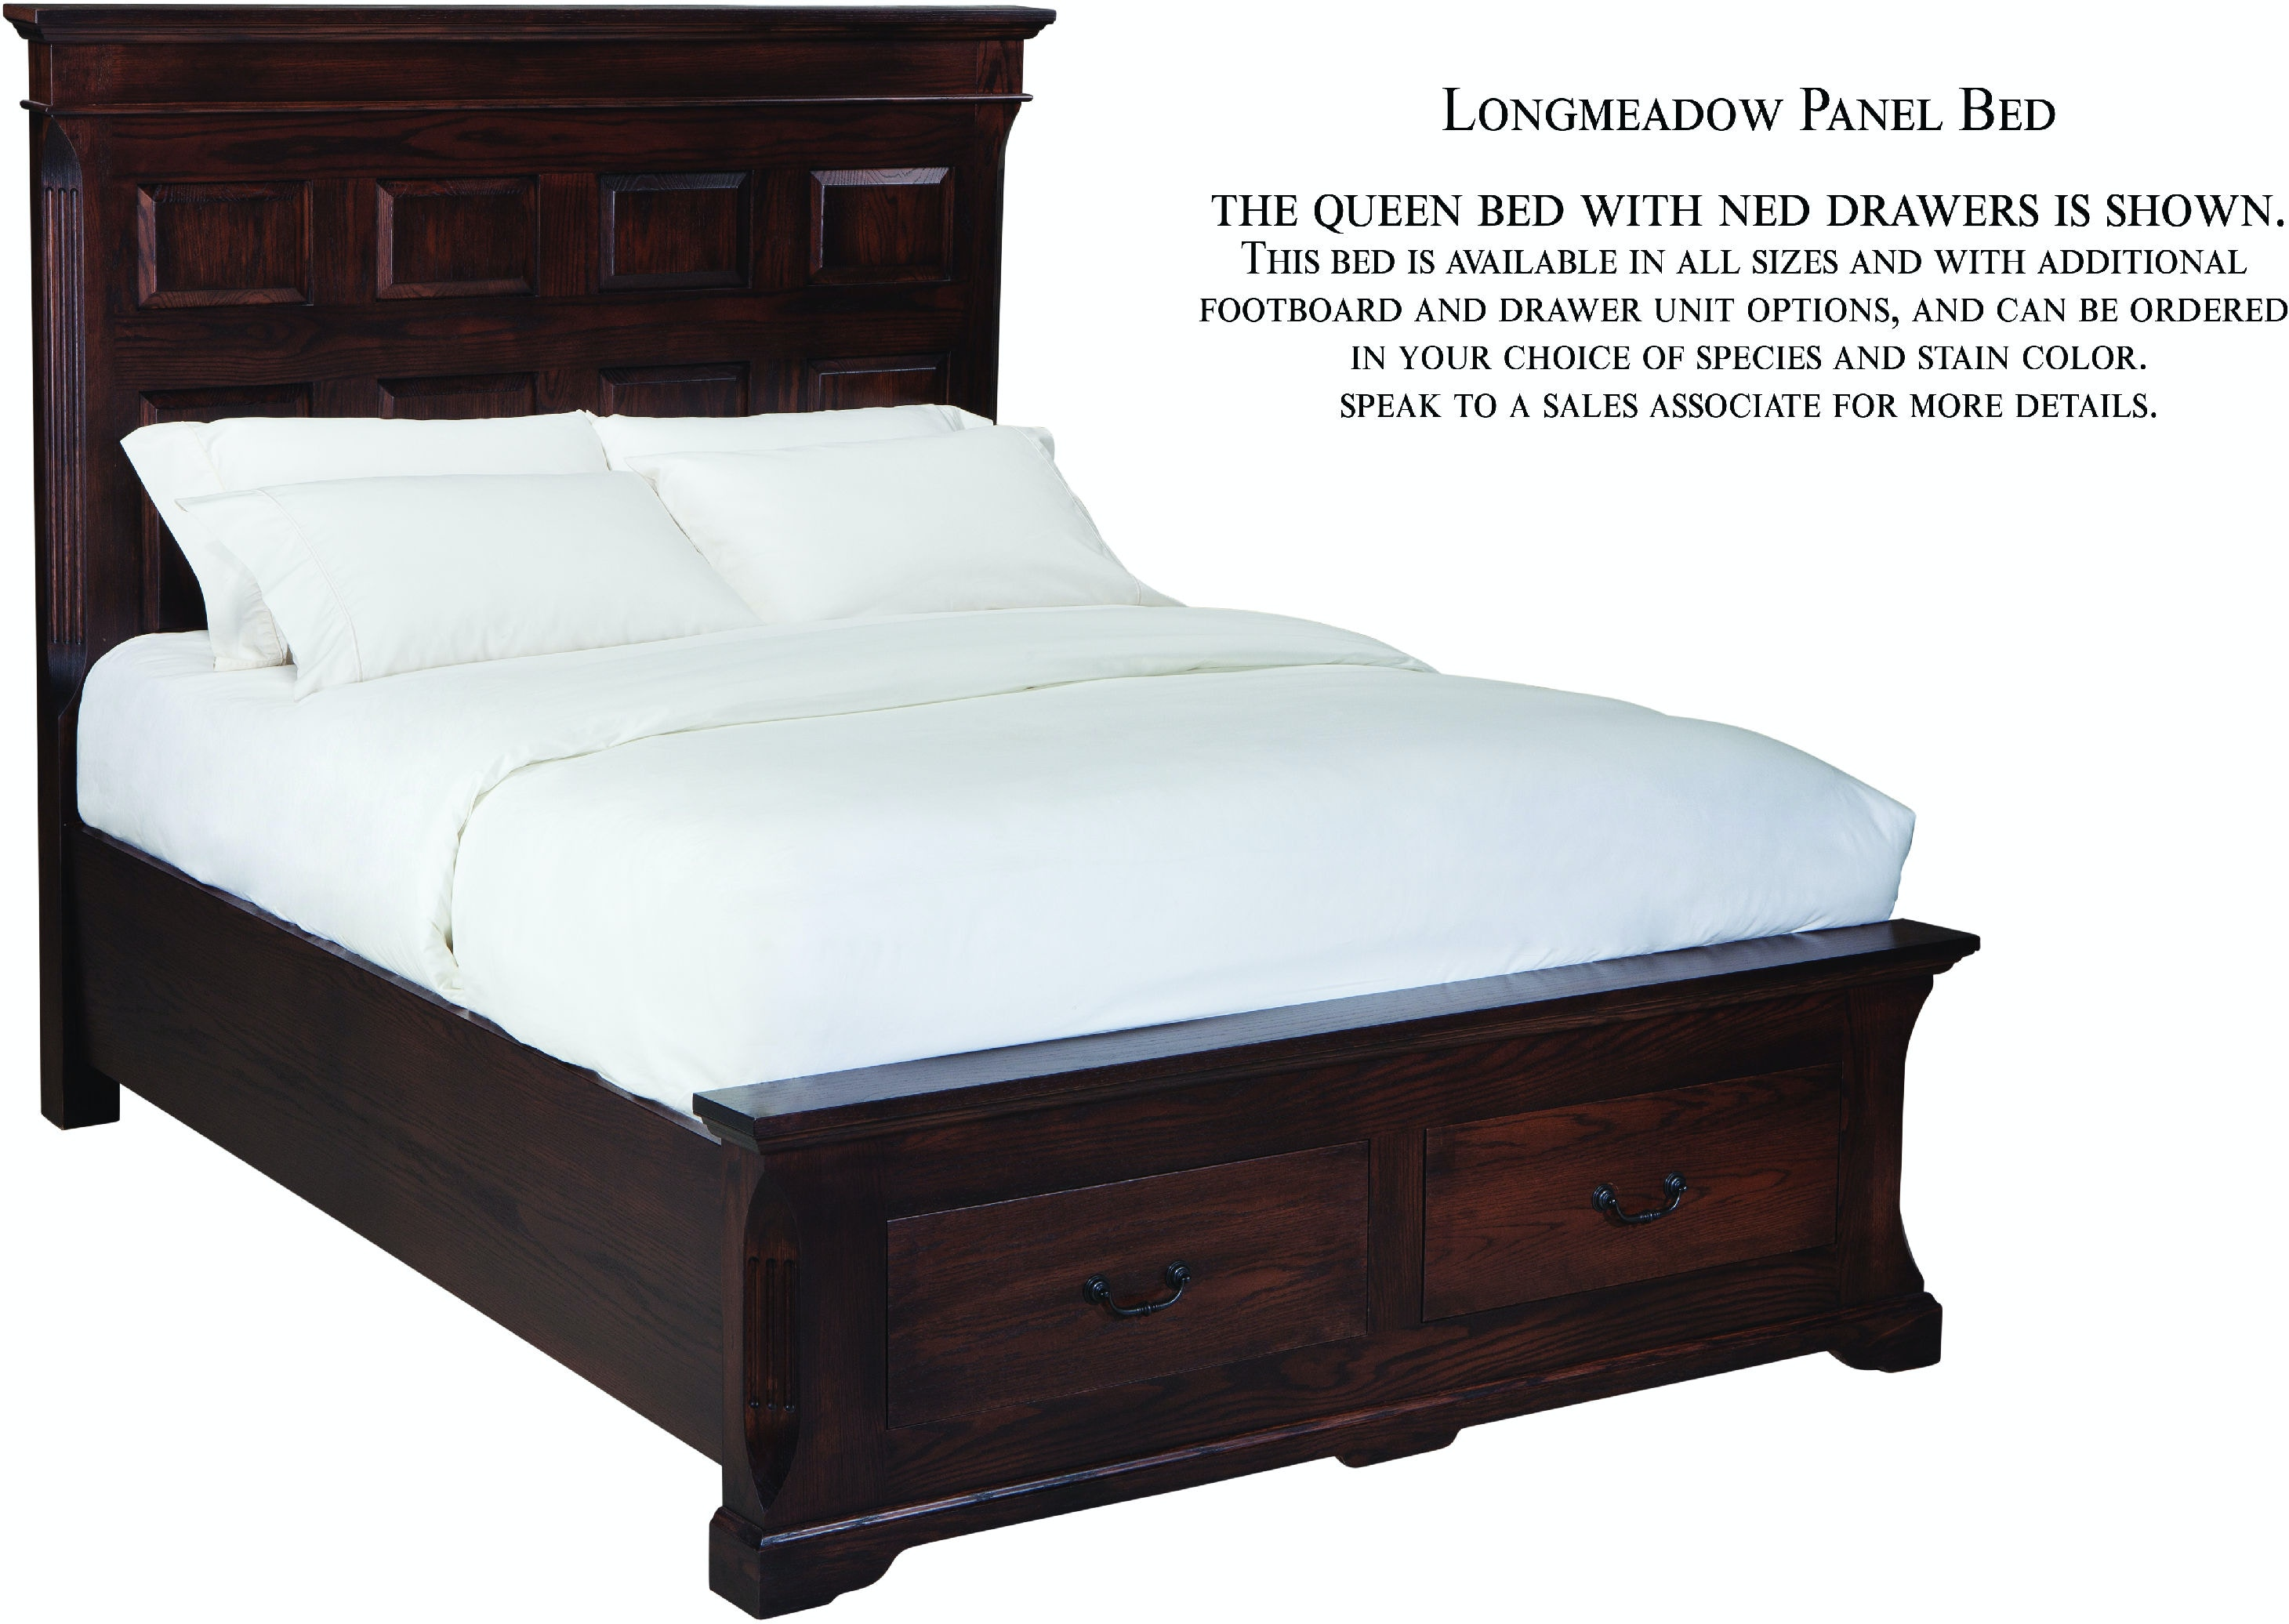 bed side table palettes by winesburg bedroom panel bed with drawers on 11473